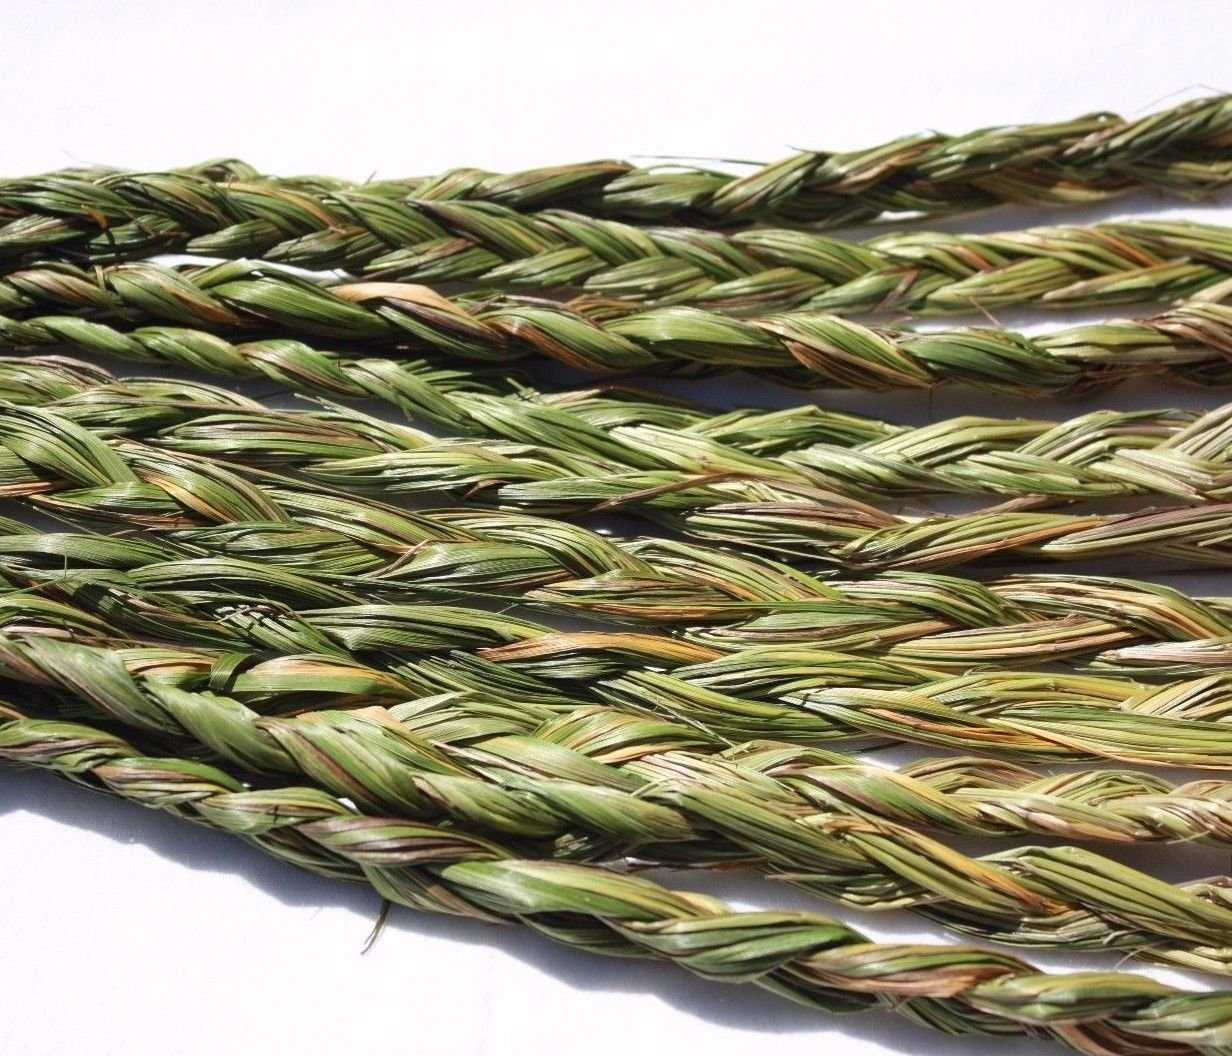 AURA VARIETY 12 PIECES (BRAIDS) BRAIDED SWEETGRASS FOR SMUDGING WICCA PAGAN SPIRITUAL 20 to 24'' LONG - HEALING, CLEANSING